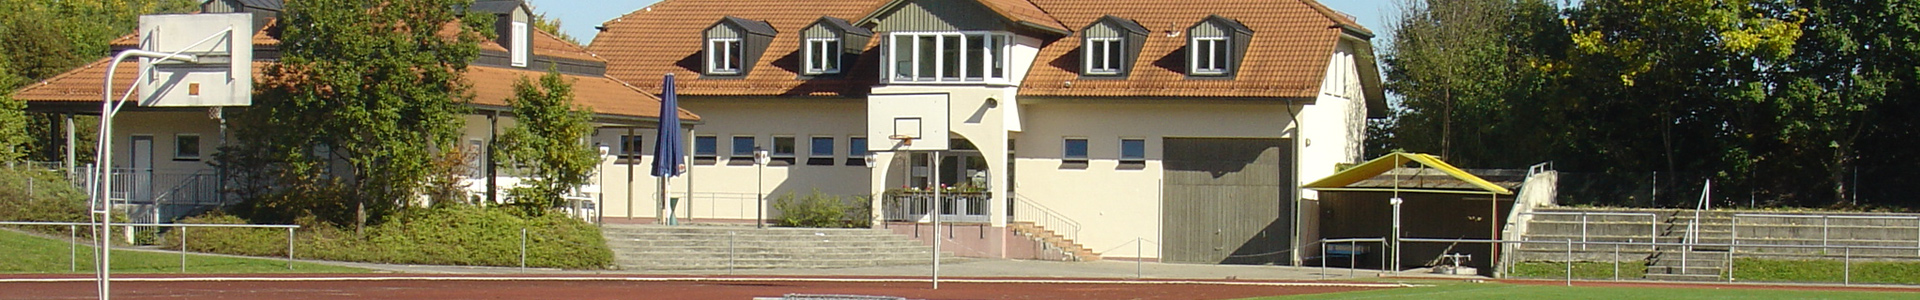 Sport Club Pöcking Possenhofen